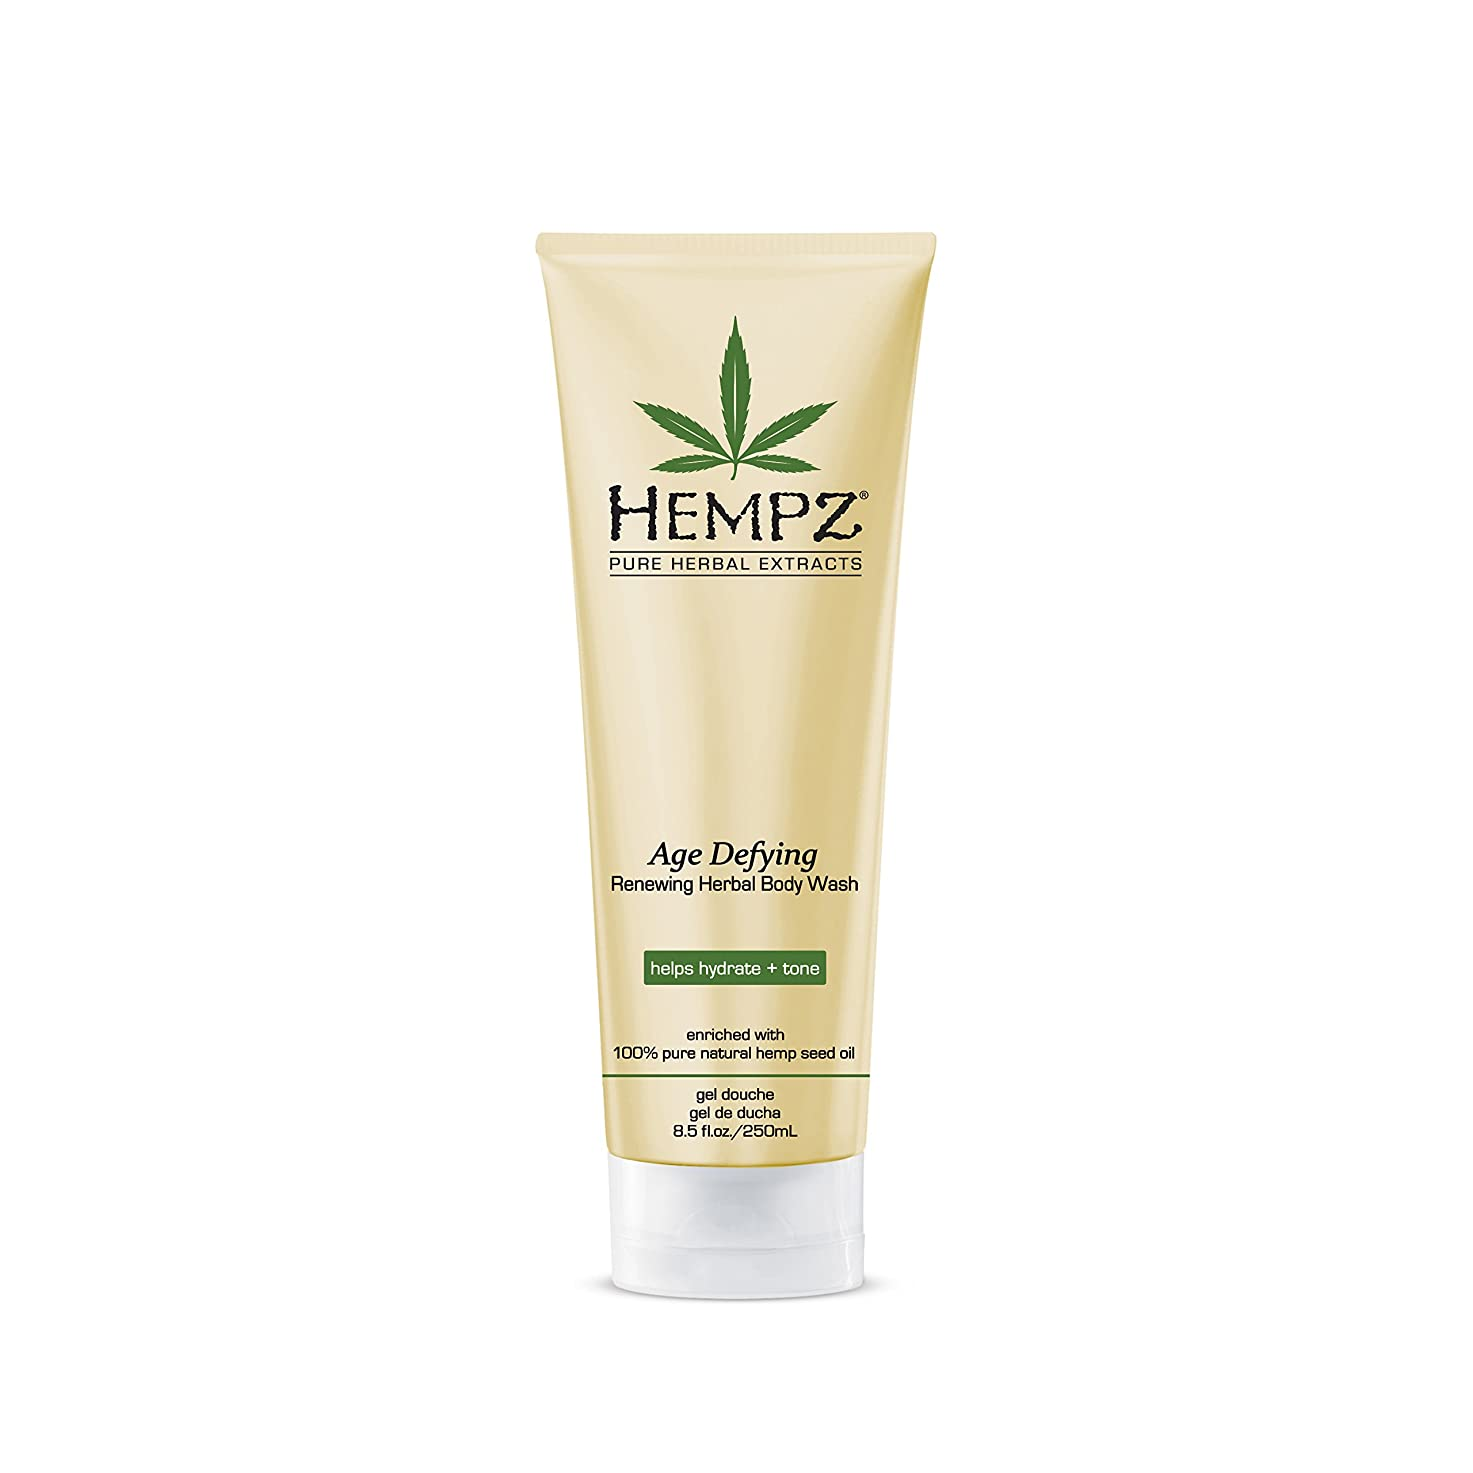 Hempz Age Defying Herbal Body Wash, Off White, Vanilla/Musk, 8.5 Fluid Ounce